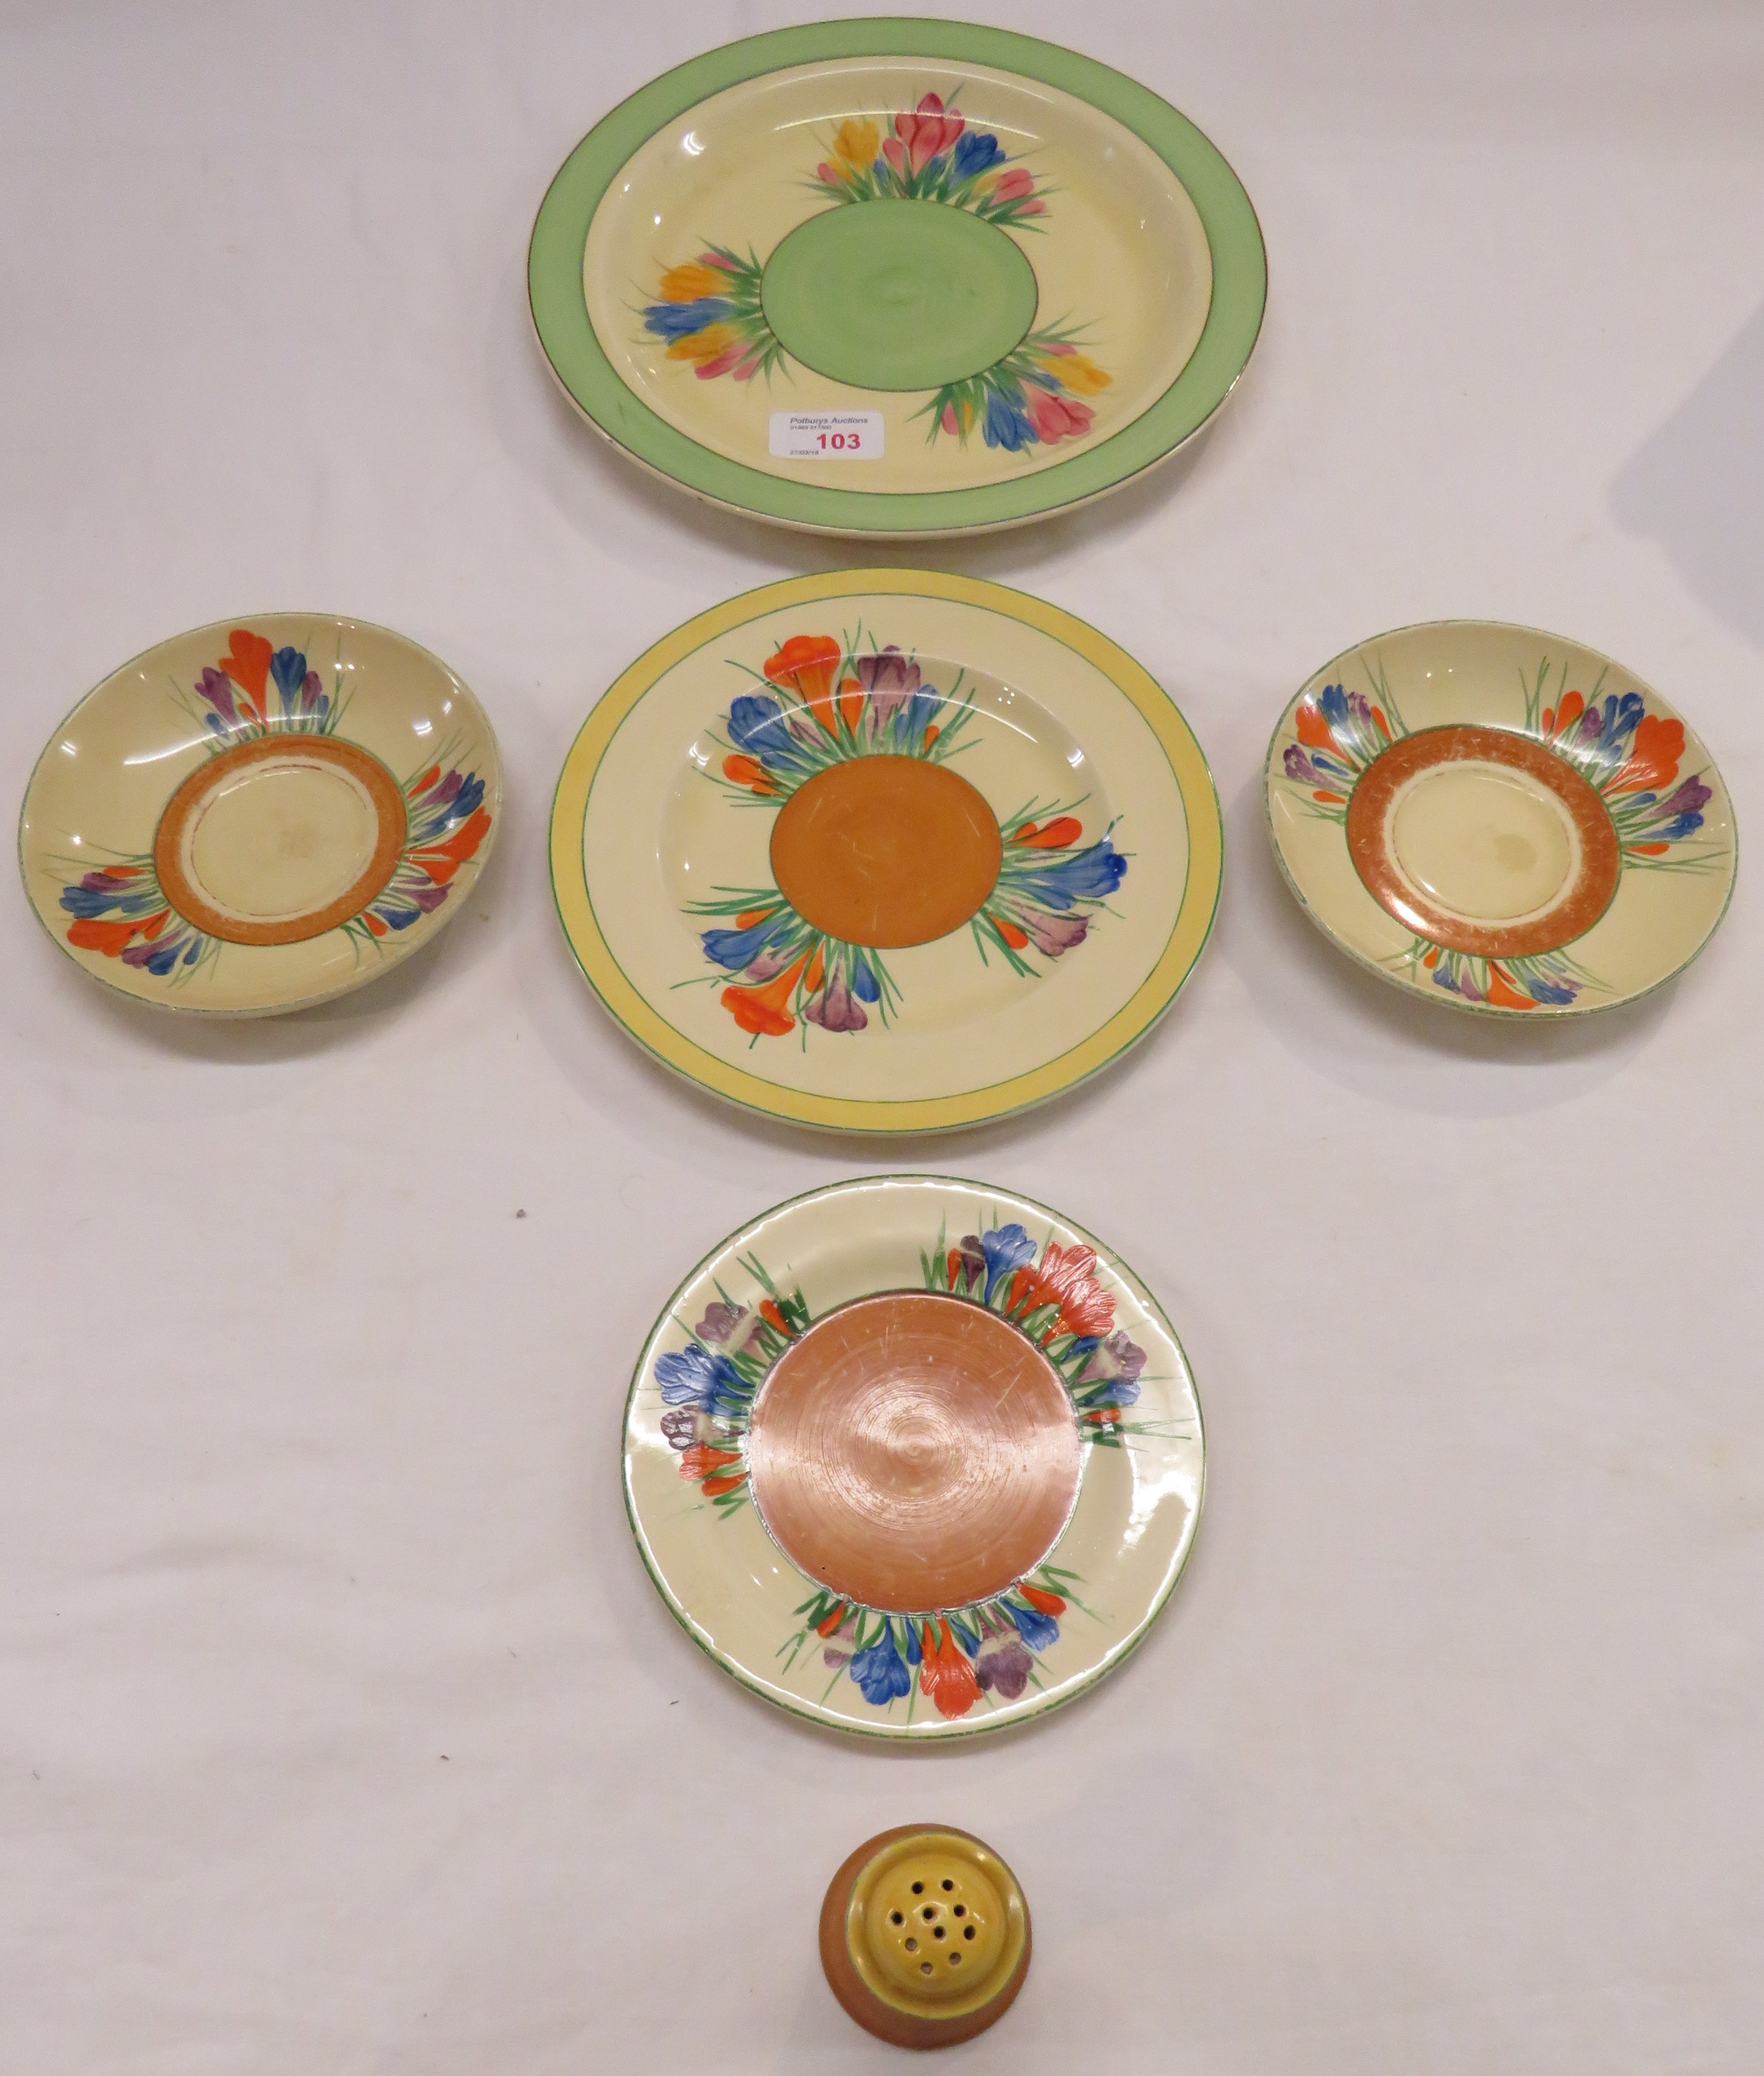 Lot 38 - Clarice Cliff crocus pattern ware - Newport pottery plate and pepper pot, Royal Staffordshire tea